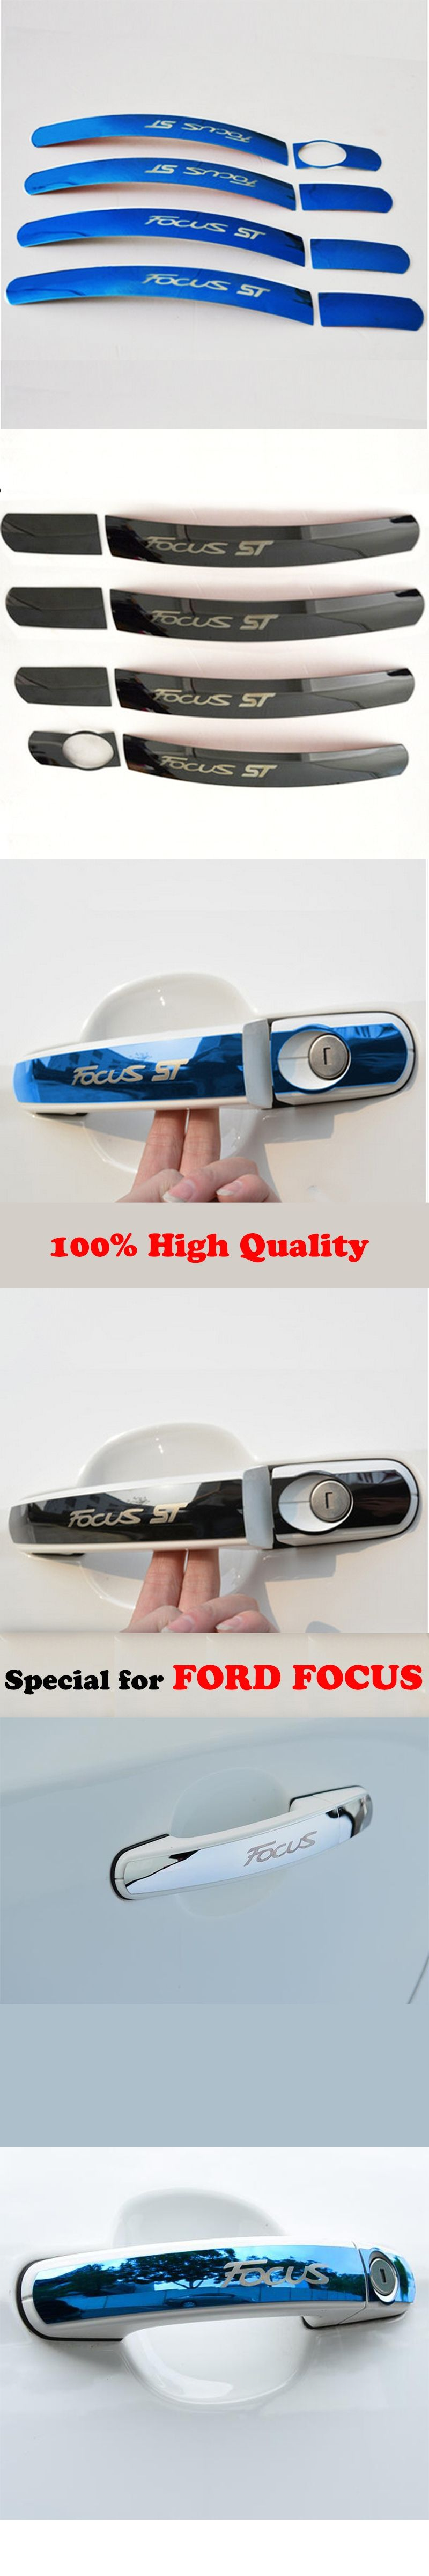 Styling Car Stainless Steel Covers Door Handle Cover Decoration Ford Focus Diagram Stickers For 2